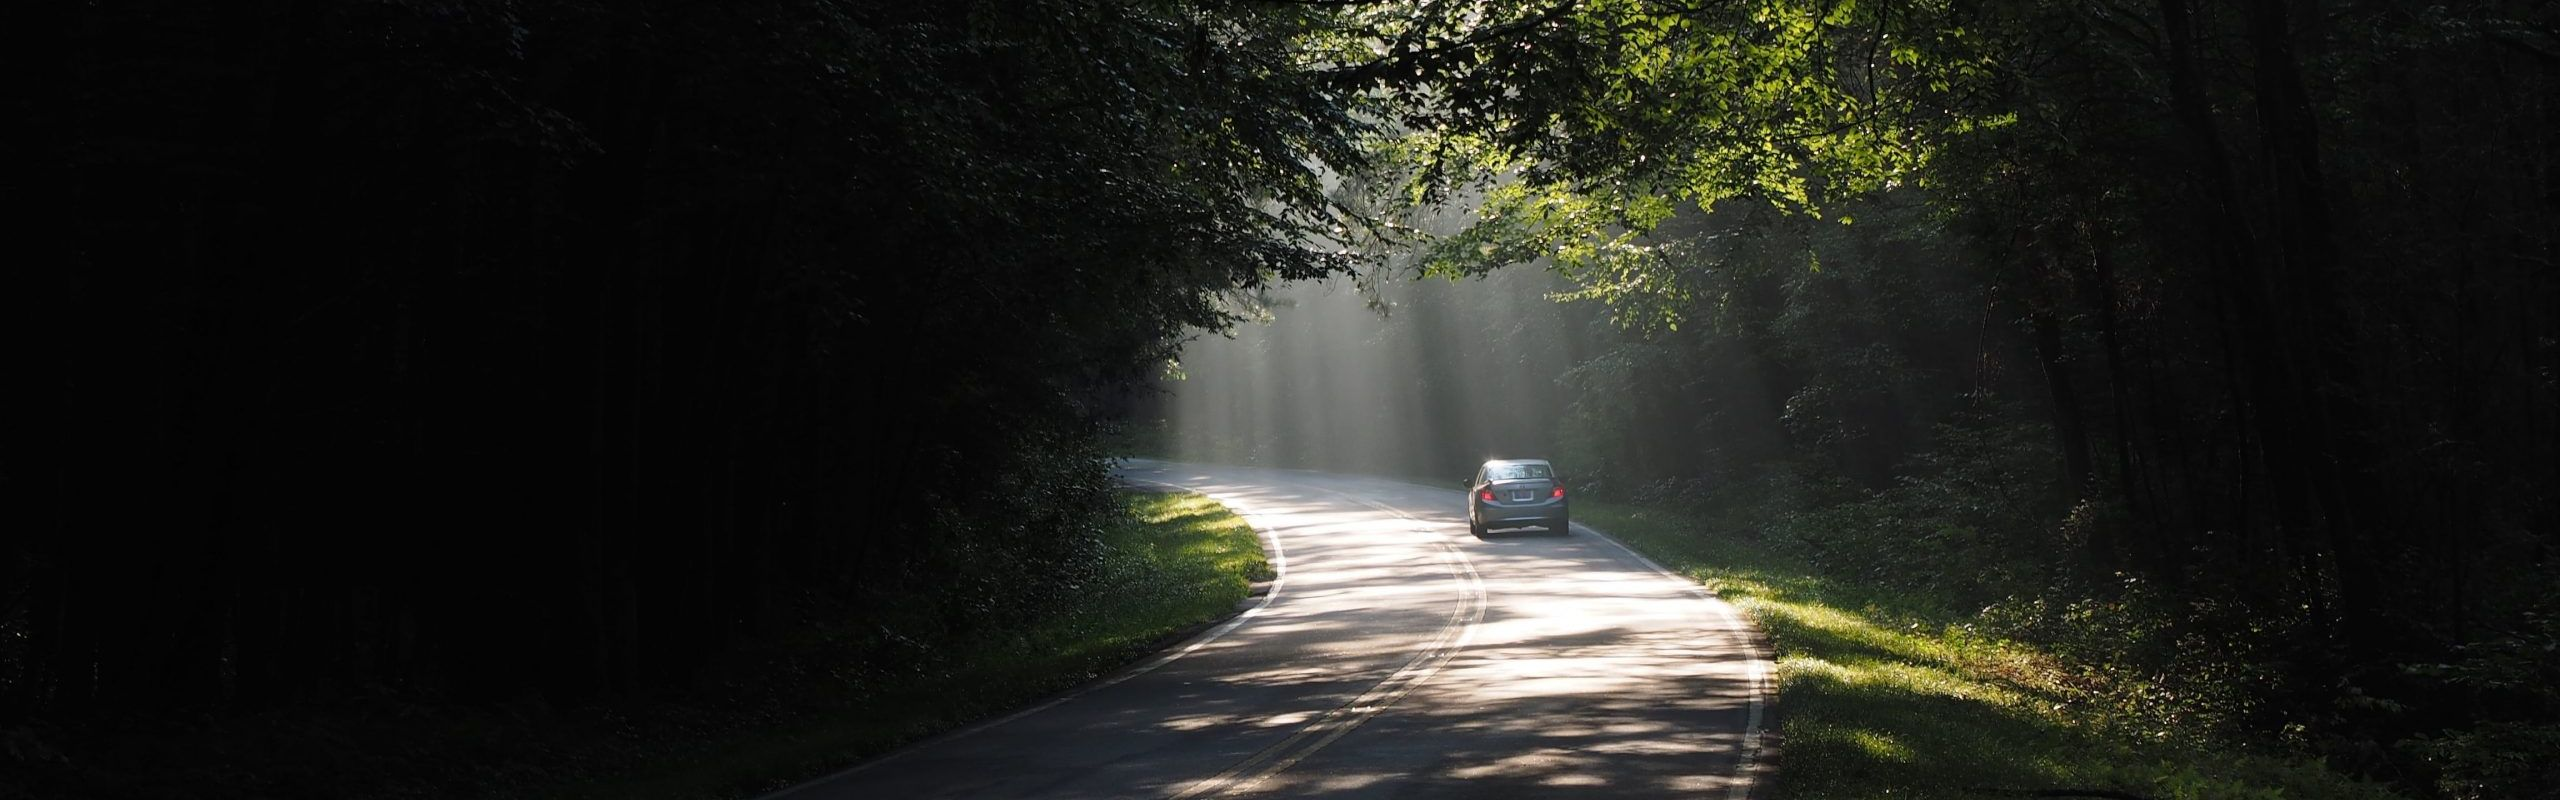 car-driving-through-road-forest-h800